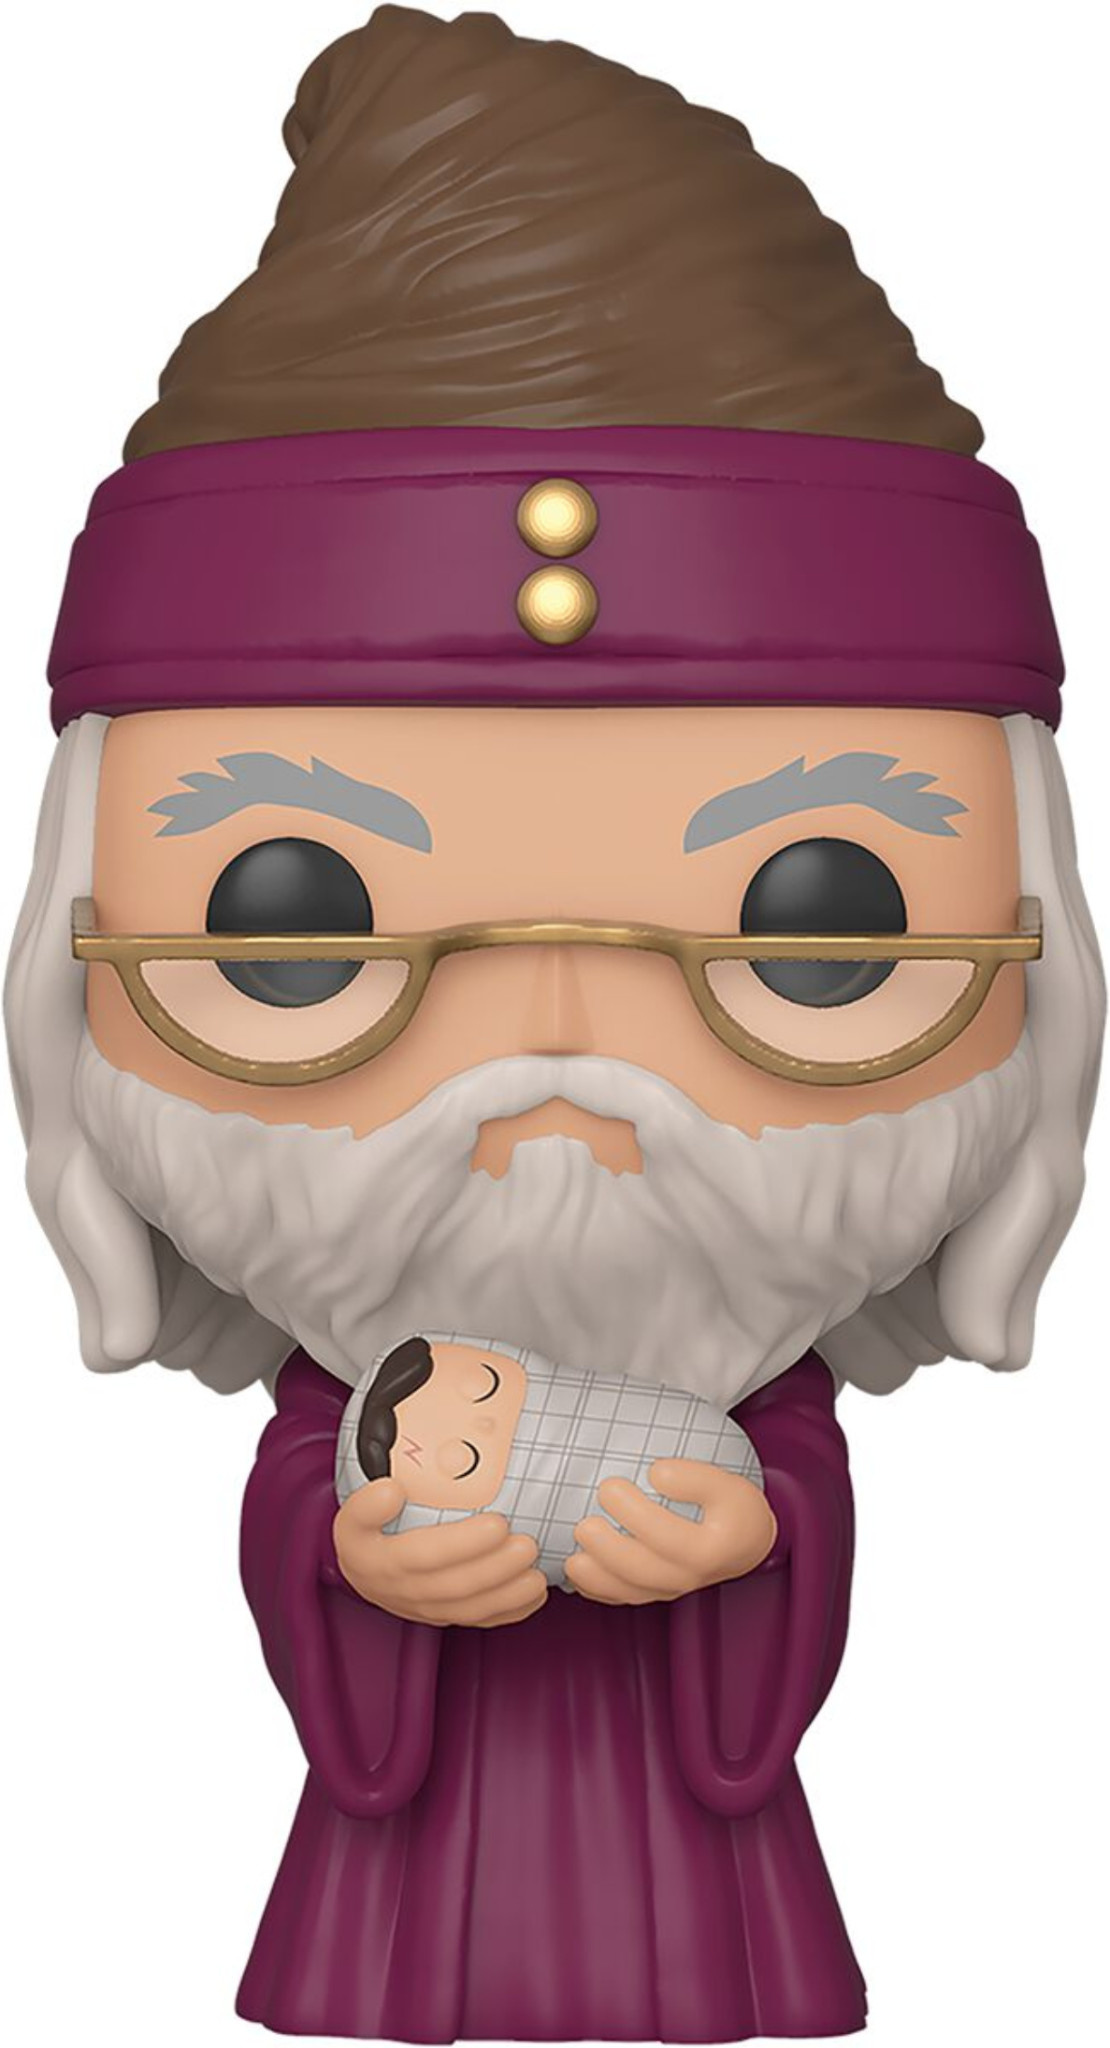 FUNKO Funko Pop! Harry Potter S10 Dumbledore with Baby Harry